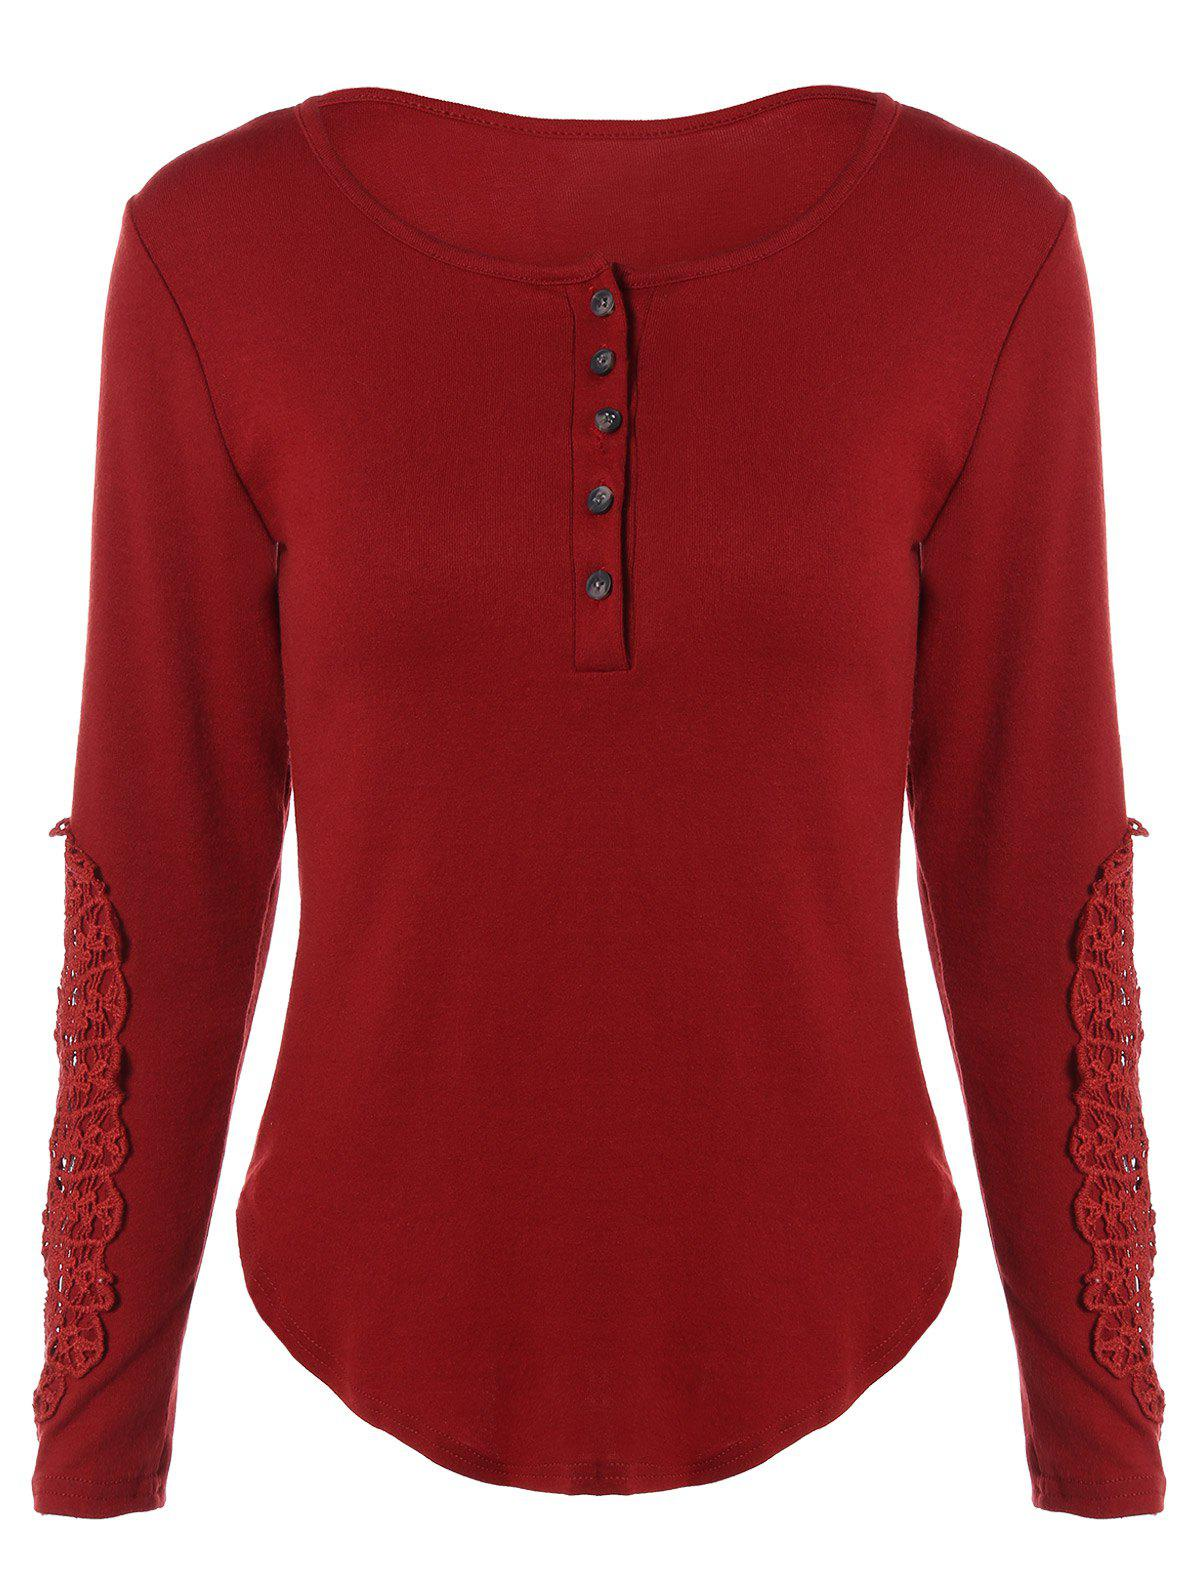 Concise Openwork Lace Buttons T-Shirt - WINE RED XL